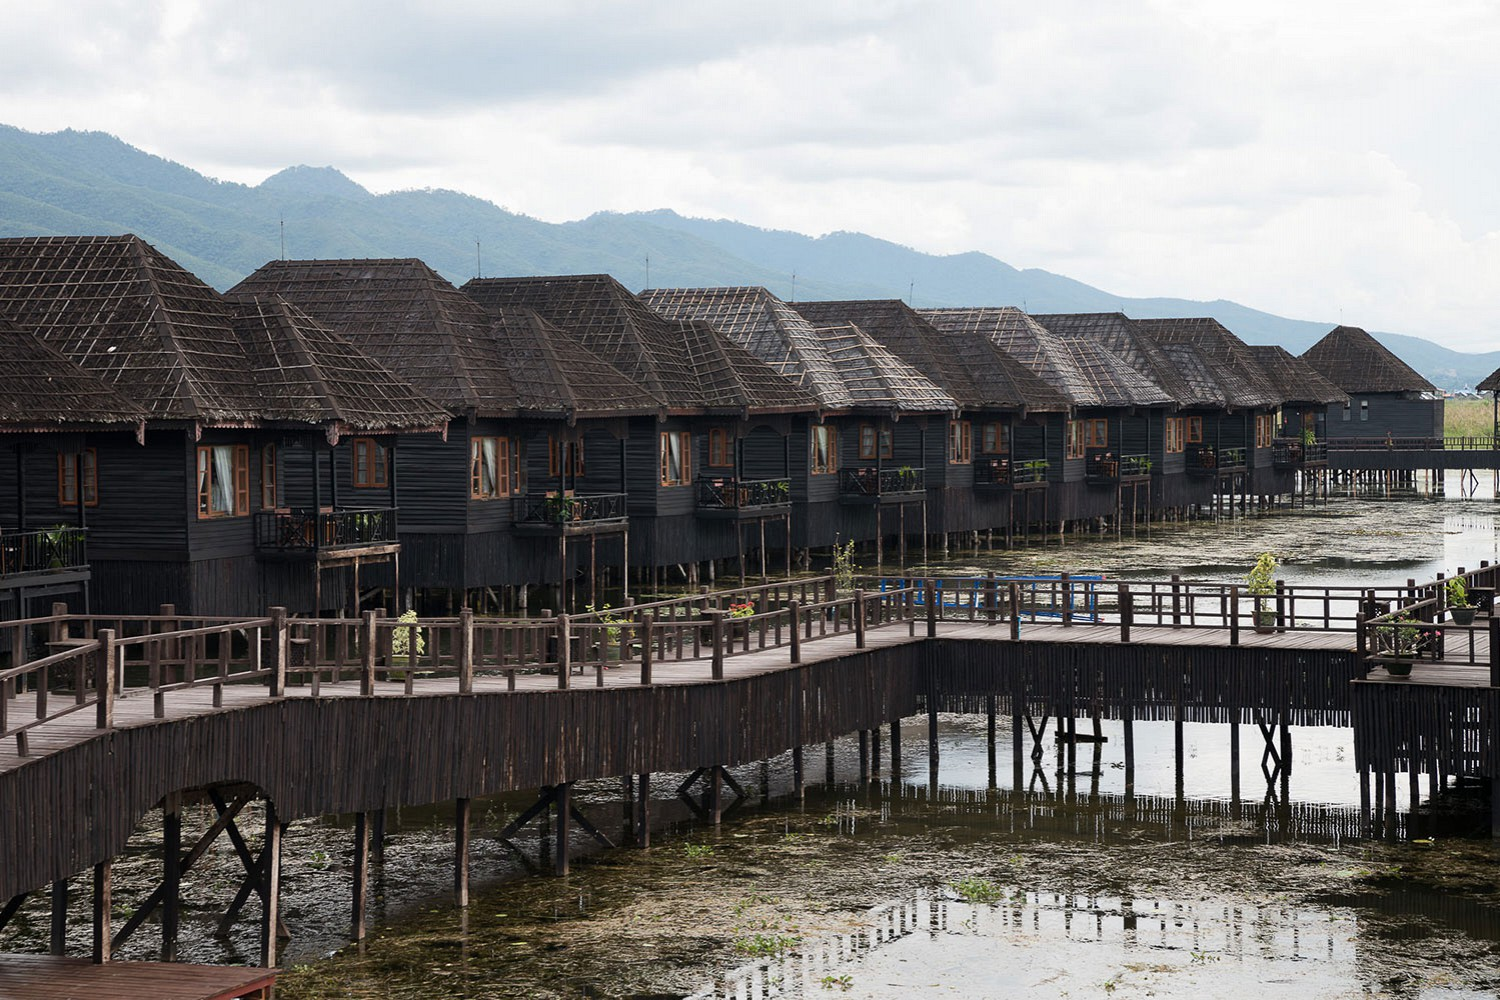 Myanmar treasure resort Inle, Htoo Hospitality